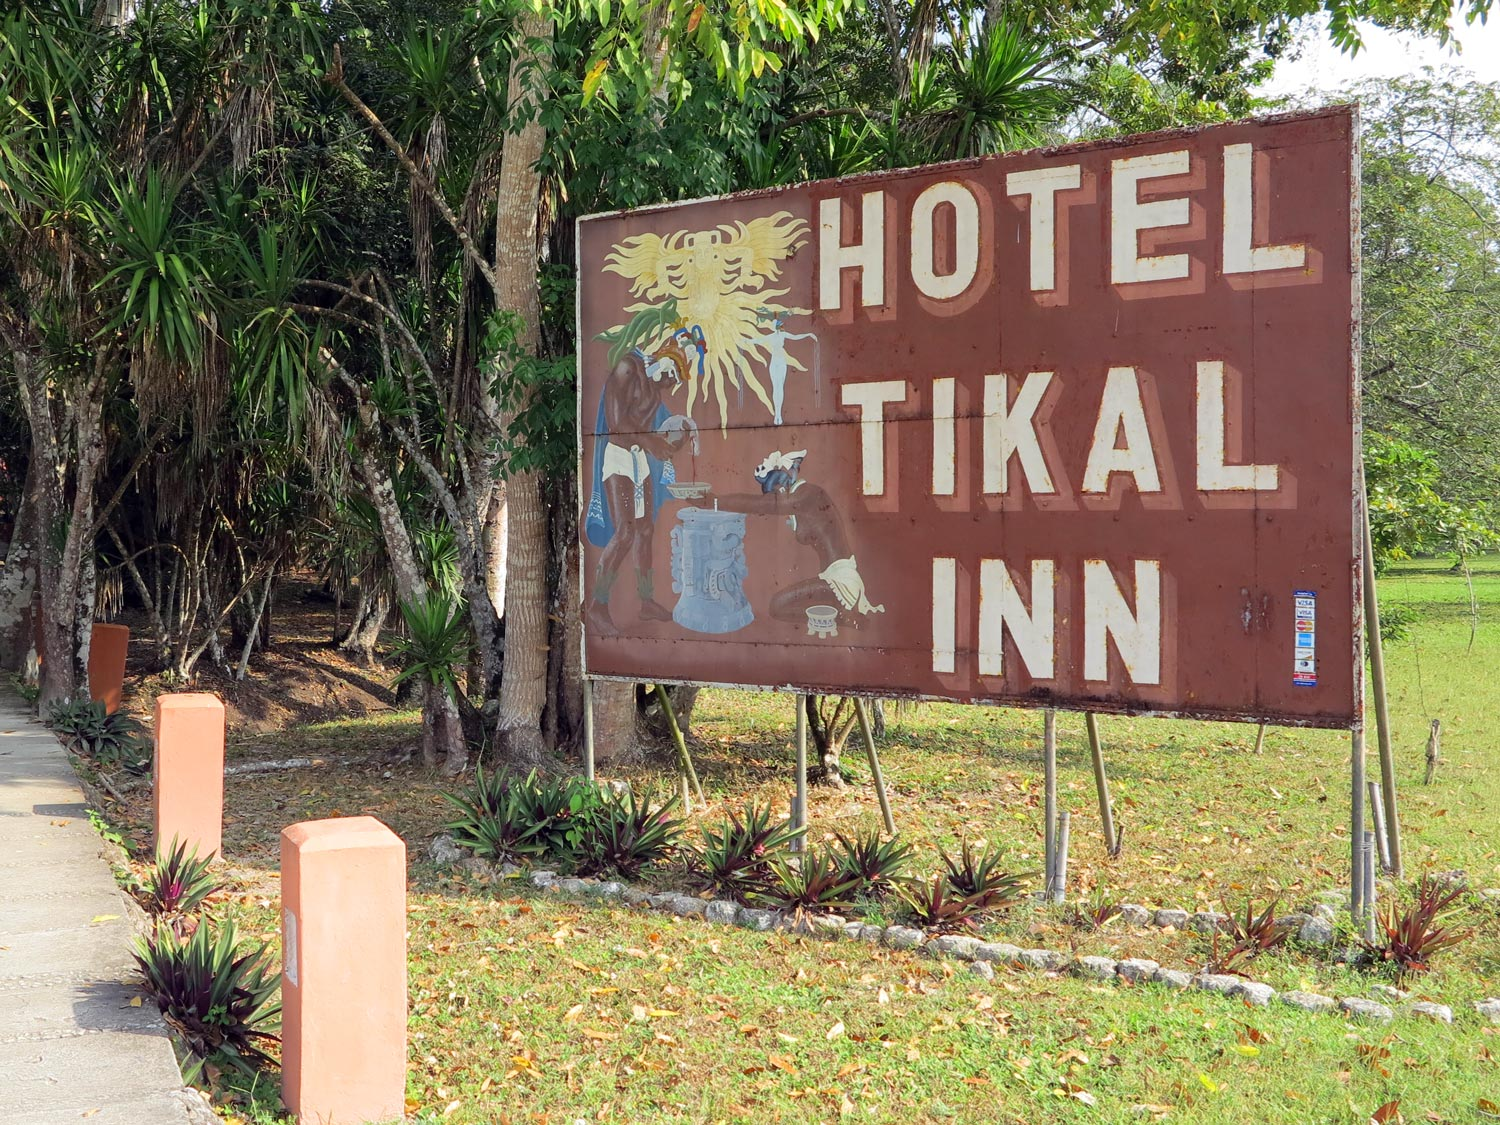 Tikal National Park Accommodations - Hotel Tikal Inn